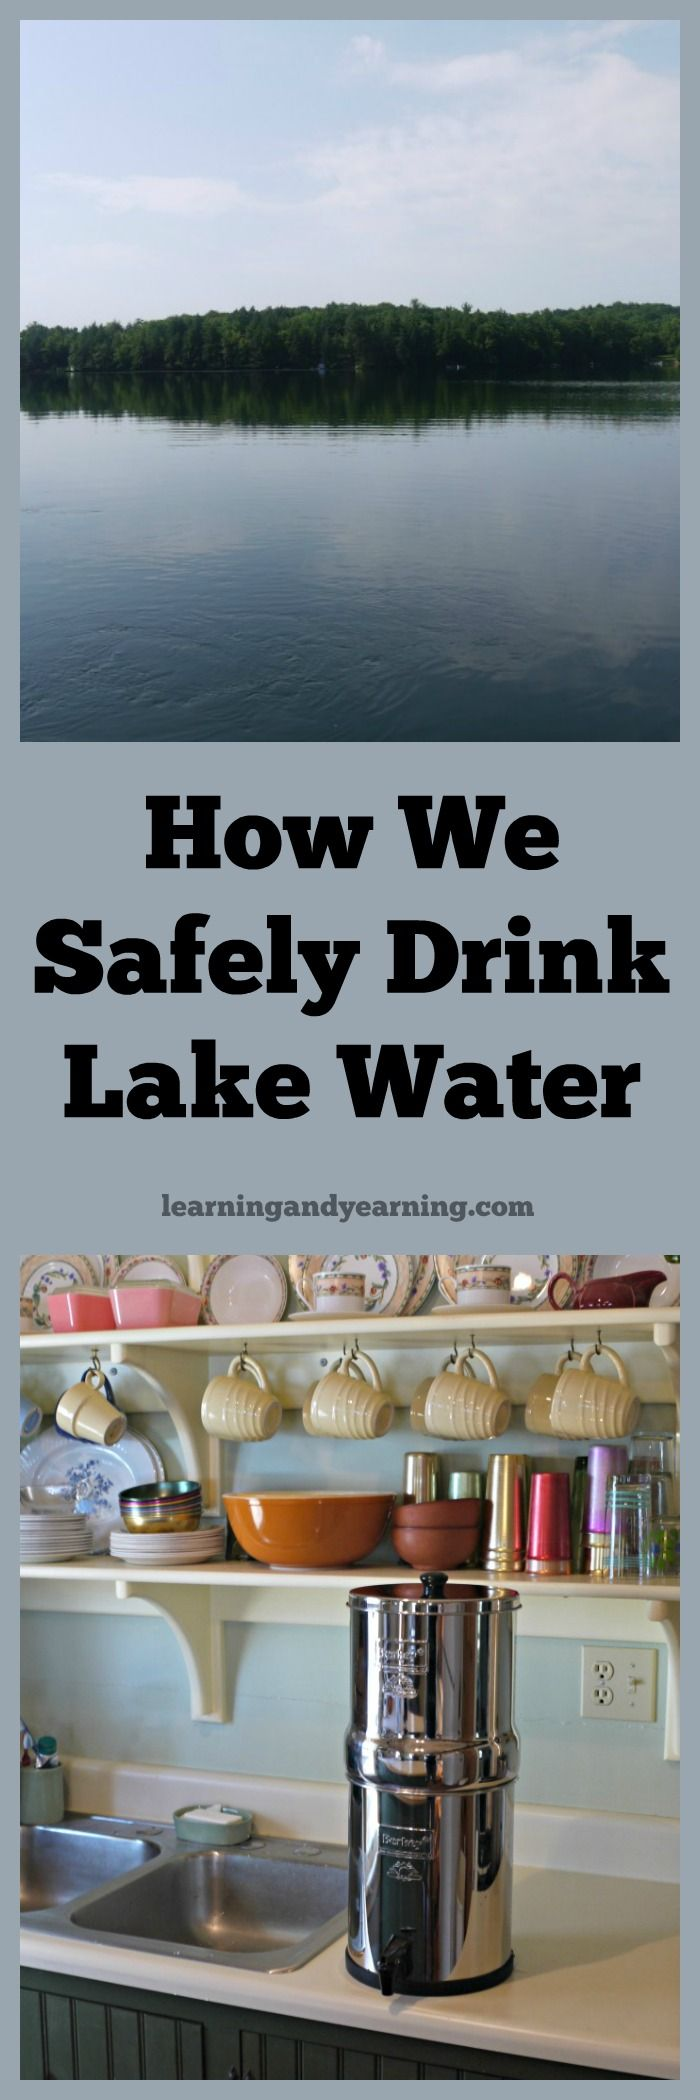 Our summer retreat doesn't have running water. For drinking water, we are able to safely drink lake water. Here's how we do it.